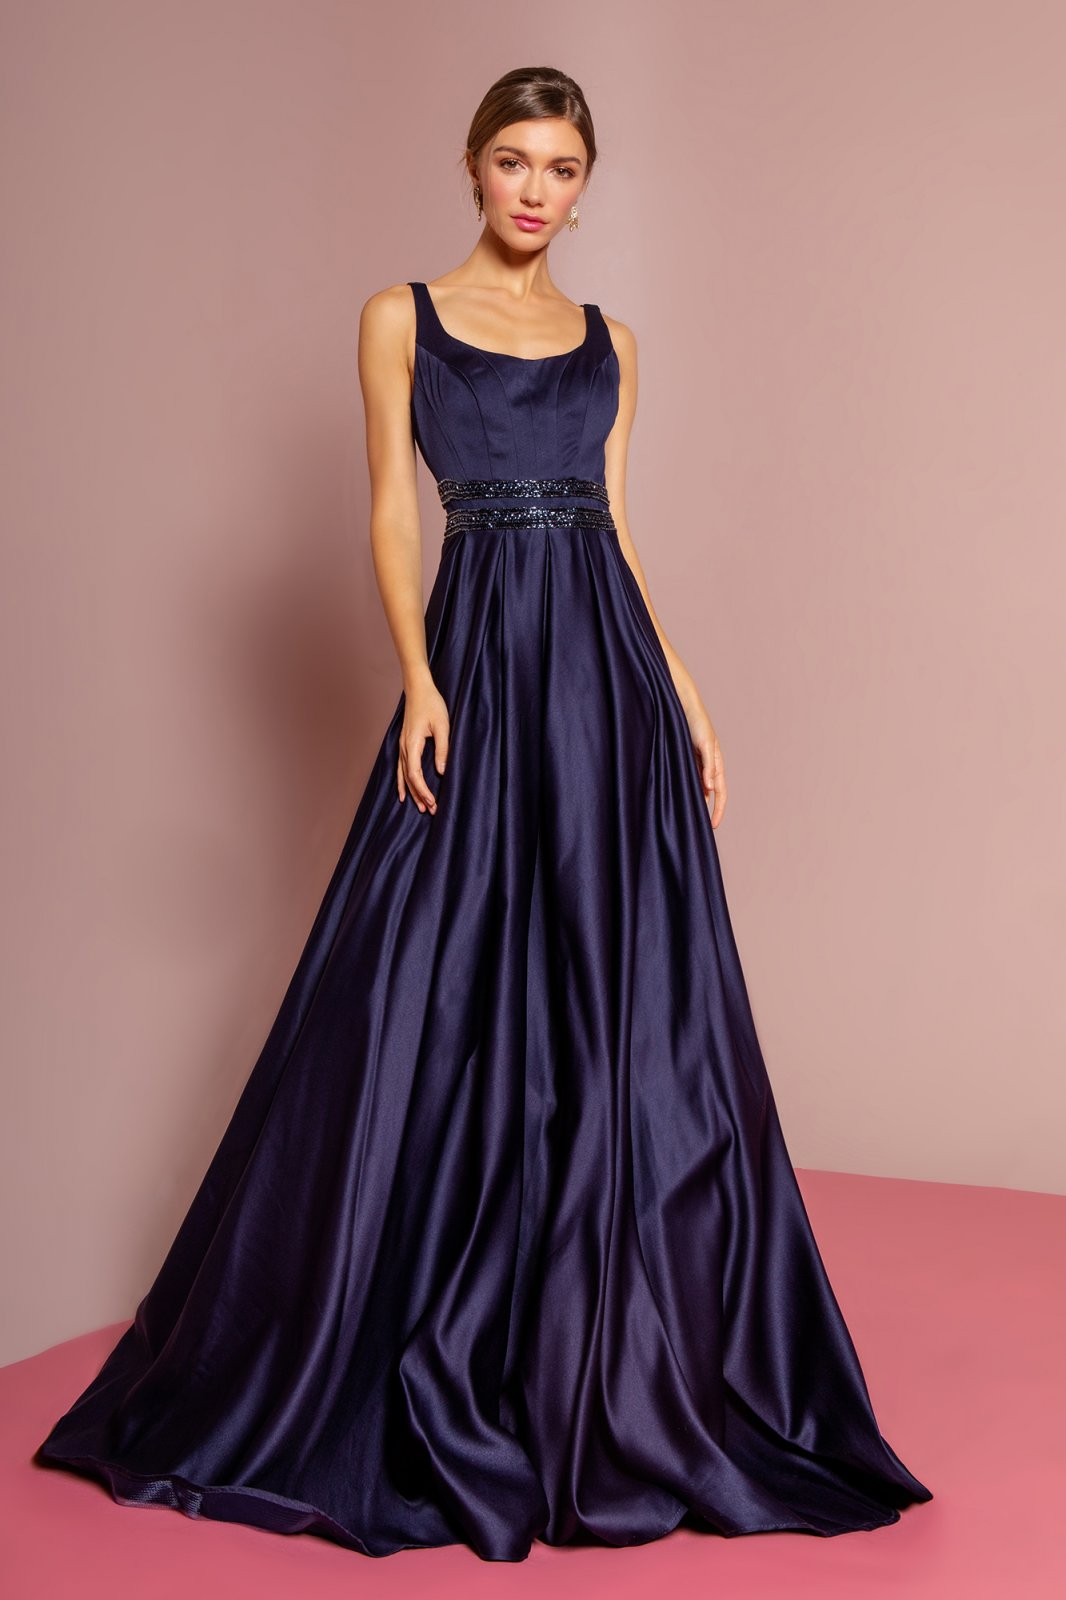 Navy Scoop Neck Satin A-Line Dress With Sheer Lace Back